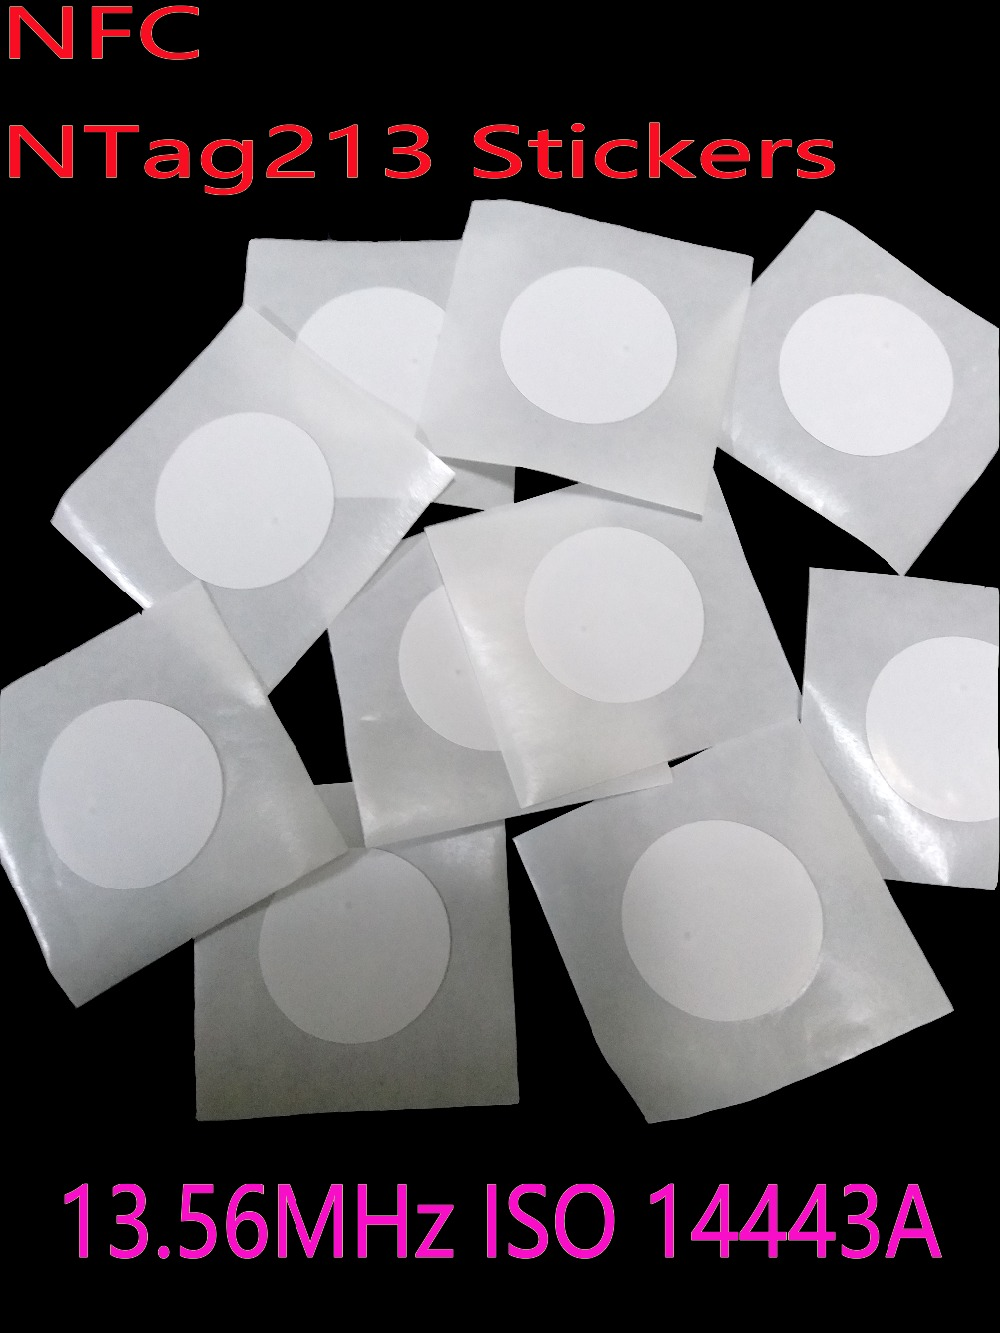 10pcs/Lot NTAG 213 NFC Tags Rewritable Ntag213 NFC Tag Sticker 13.56MHz ISO14443A  25mm All NFC Phone Available Adhesive Labels 4pcs lot nfc tag sticker 13 56mhz iso14443a ntag 213 nfc sticker universal lable rfid tag for all nfc enabled phones dia 30mm